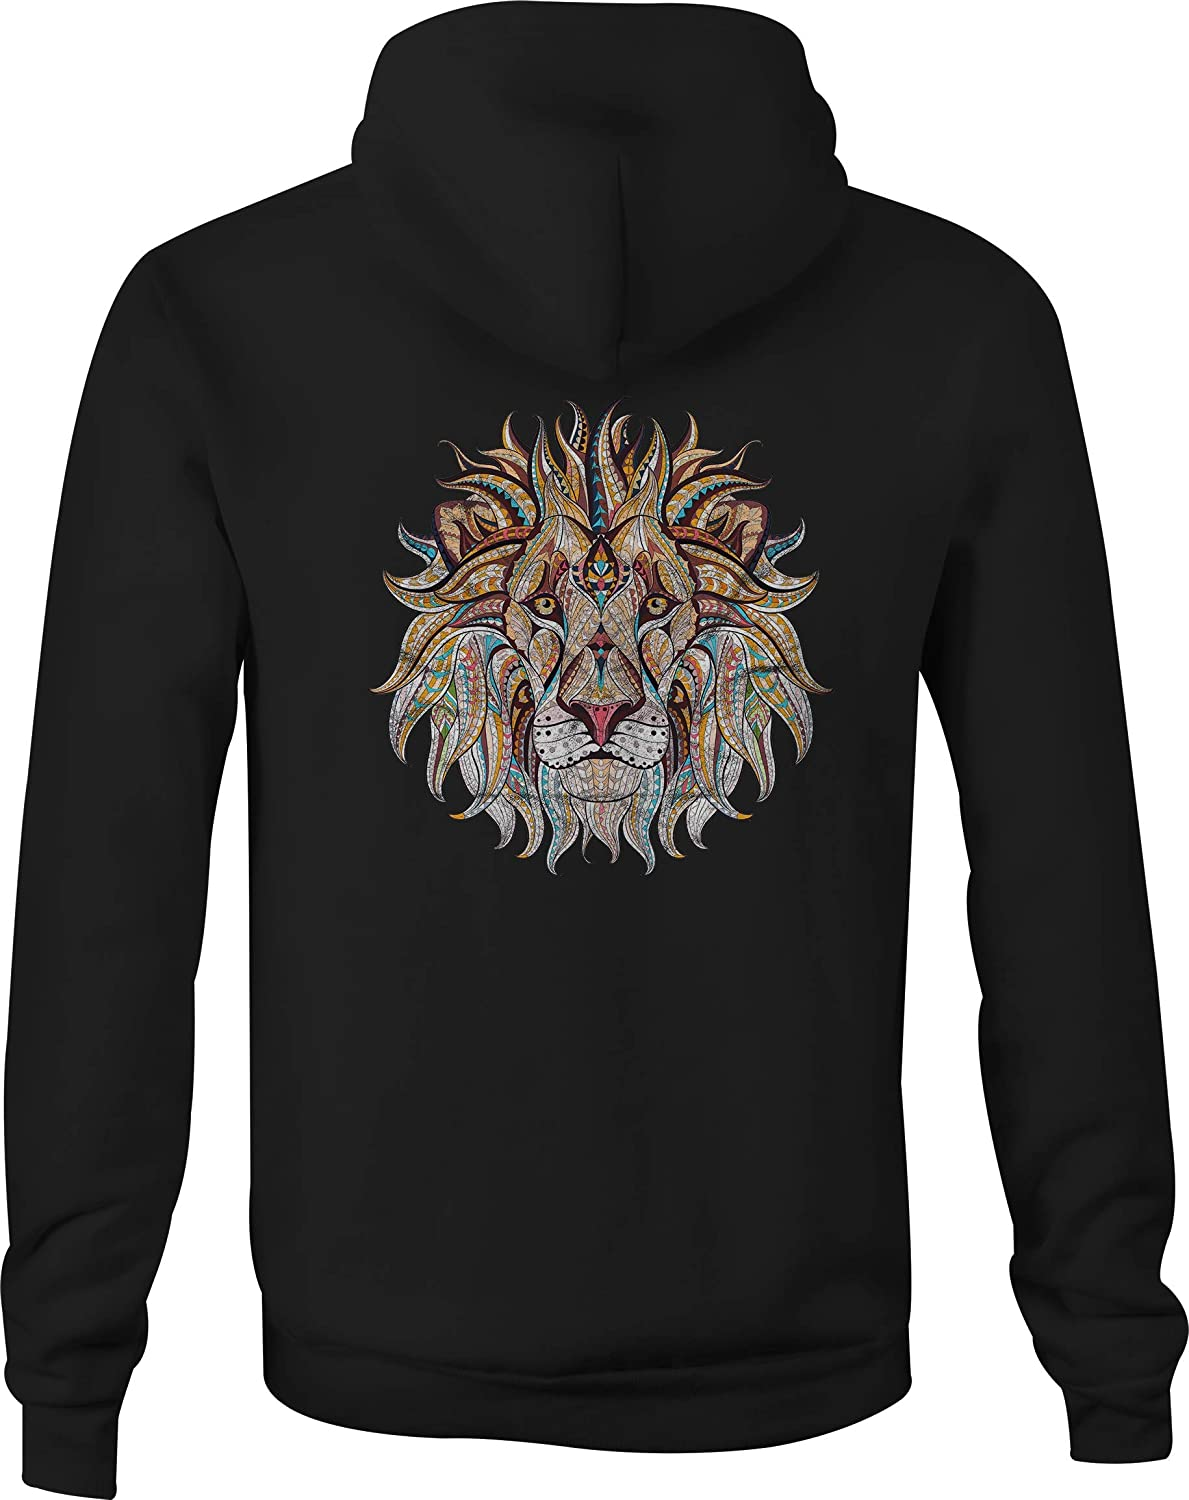 Zip Up Hoodie African Lion Mosaic Hooded Sweatshirt for Men